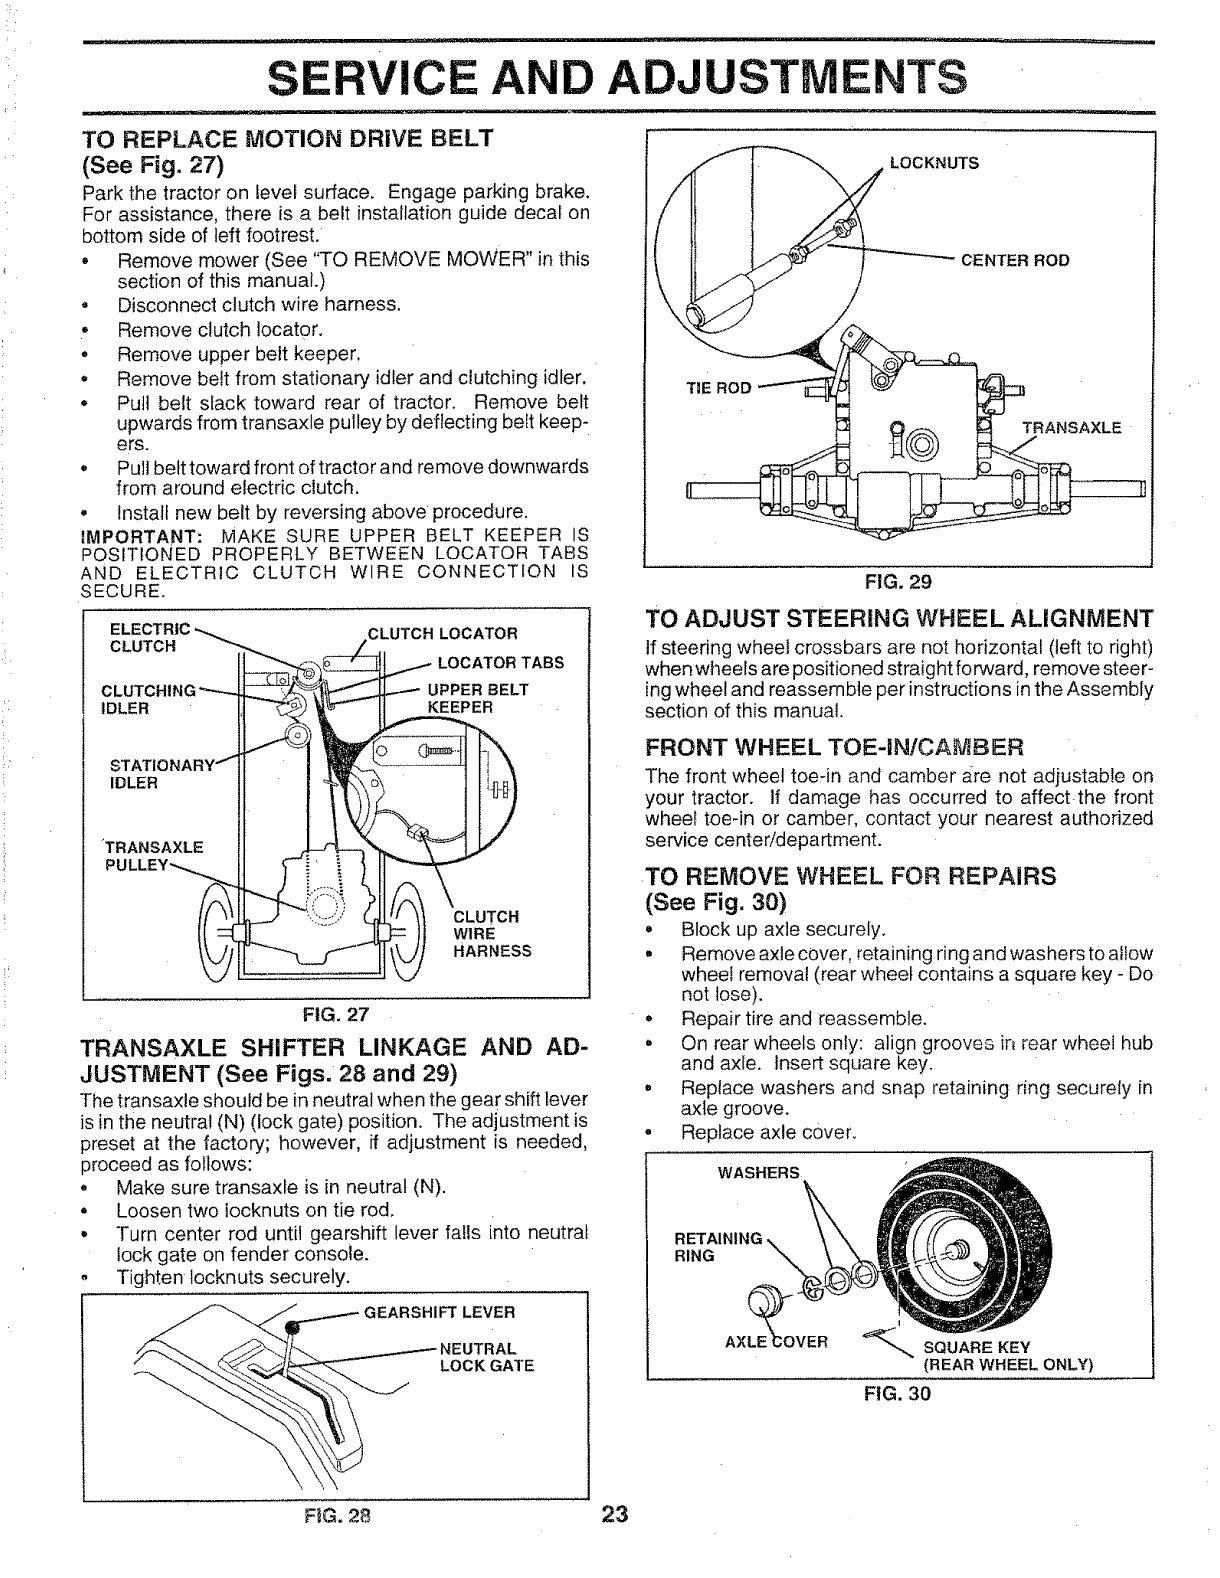 Craftsman 917256701 User Manual Tractor Manuals And Guides L0904462 Keeper Trailer Wiring Harness